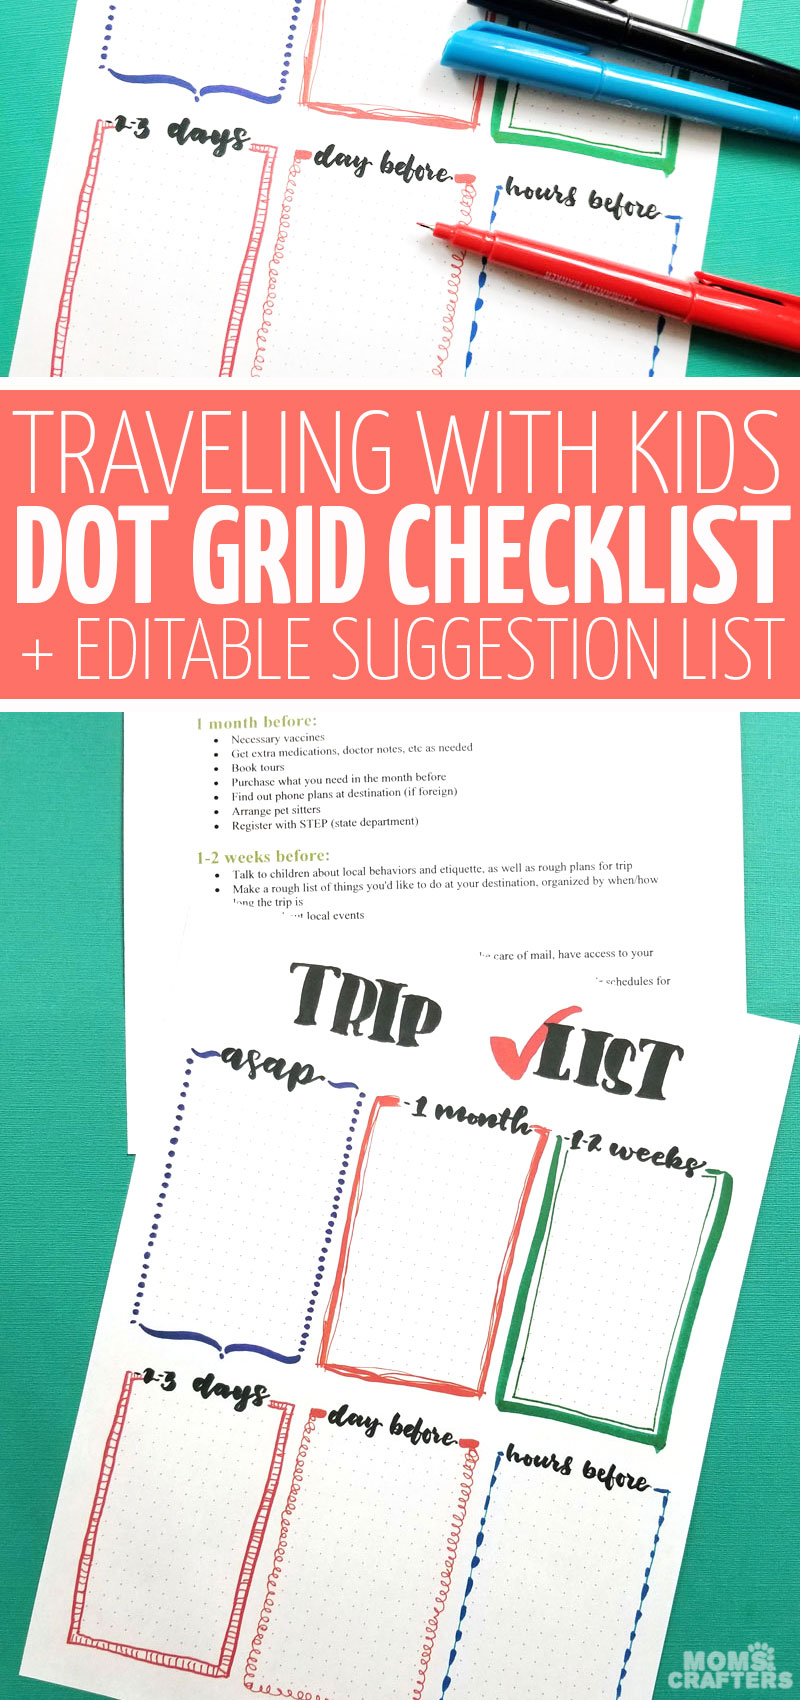 Looking for a cool travel with kids checklist? This free printable pre-trip to do list will help you make sure you have everything done and organized for your long haul international plane trip with young kids including toddlers, preschoolers, and more!